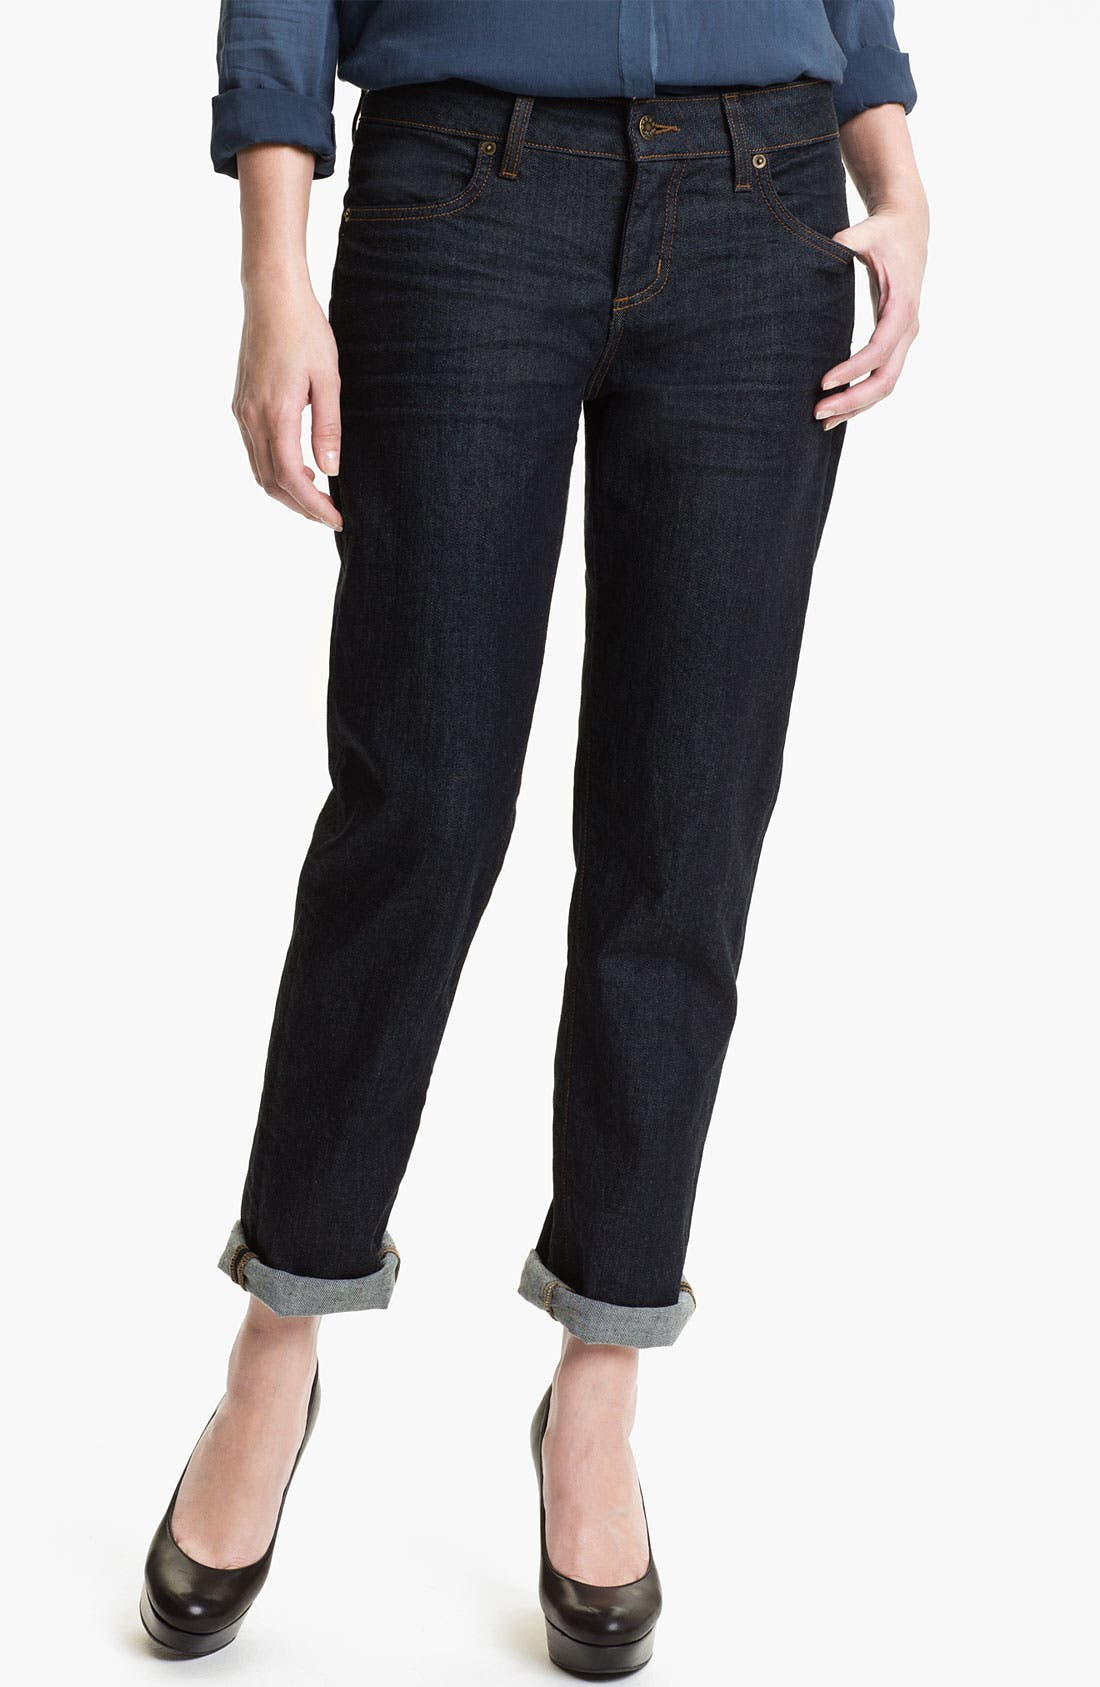 Alternate Image 1 Selected - Blue Essence Boyfriend Jeans (Dark Canadian) (Nordstrom Exclusive)